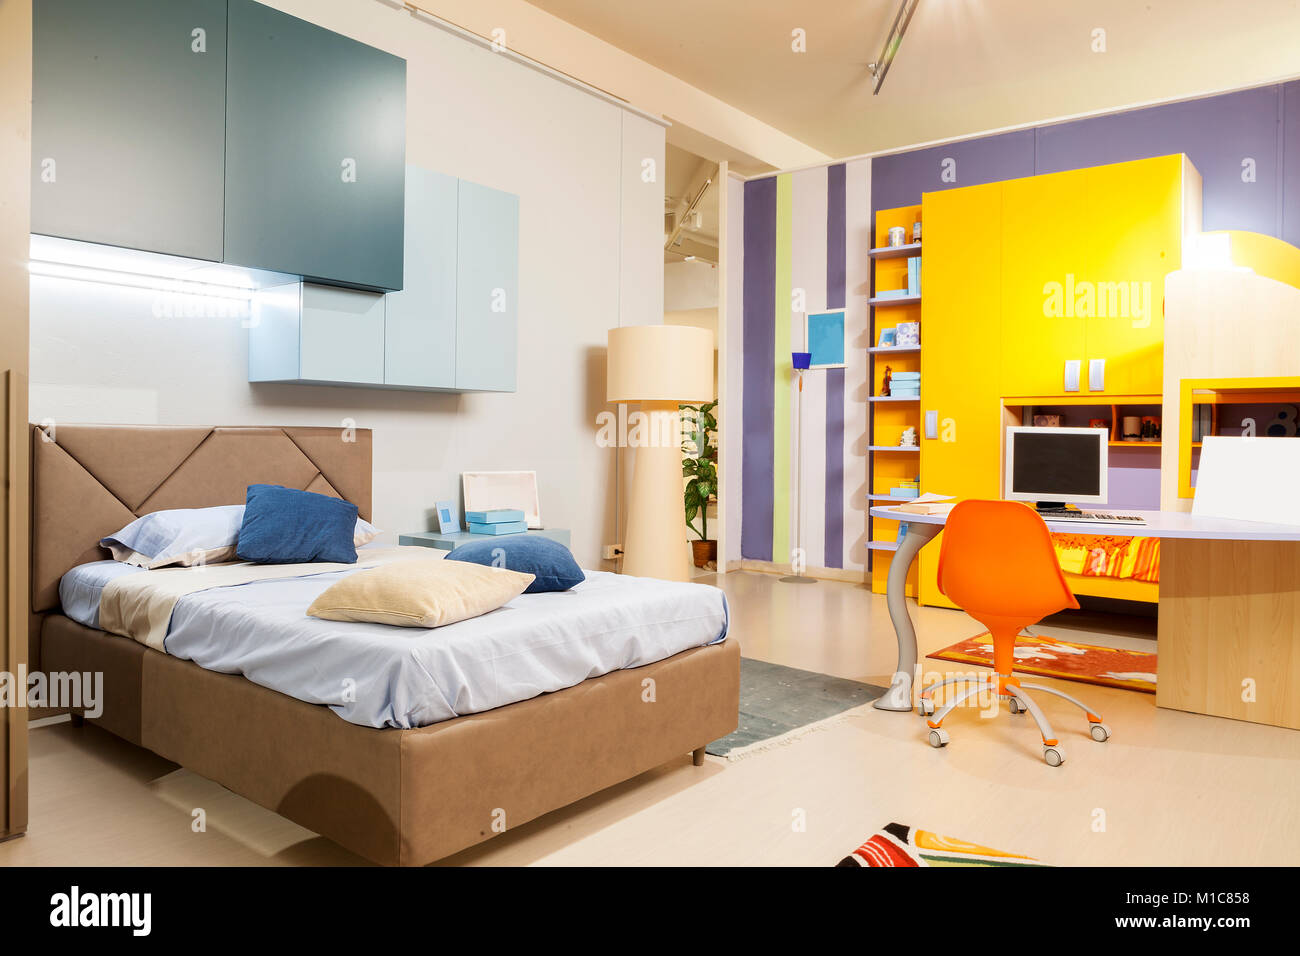 home interior modern beautiful apartment in new luxury location. children bedroom - Stock Image